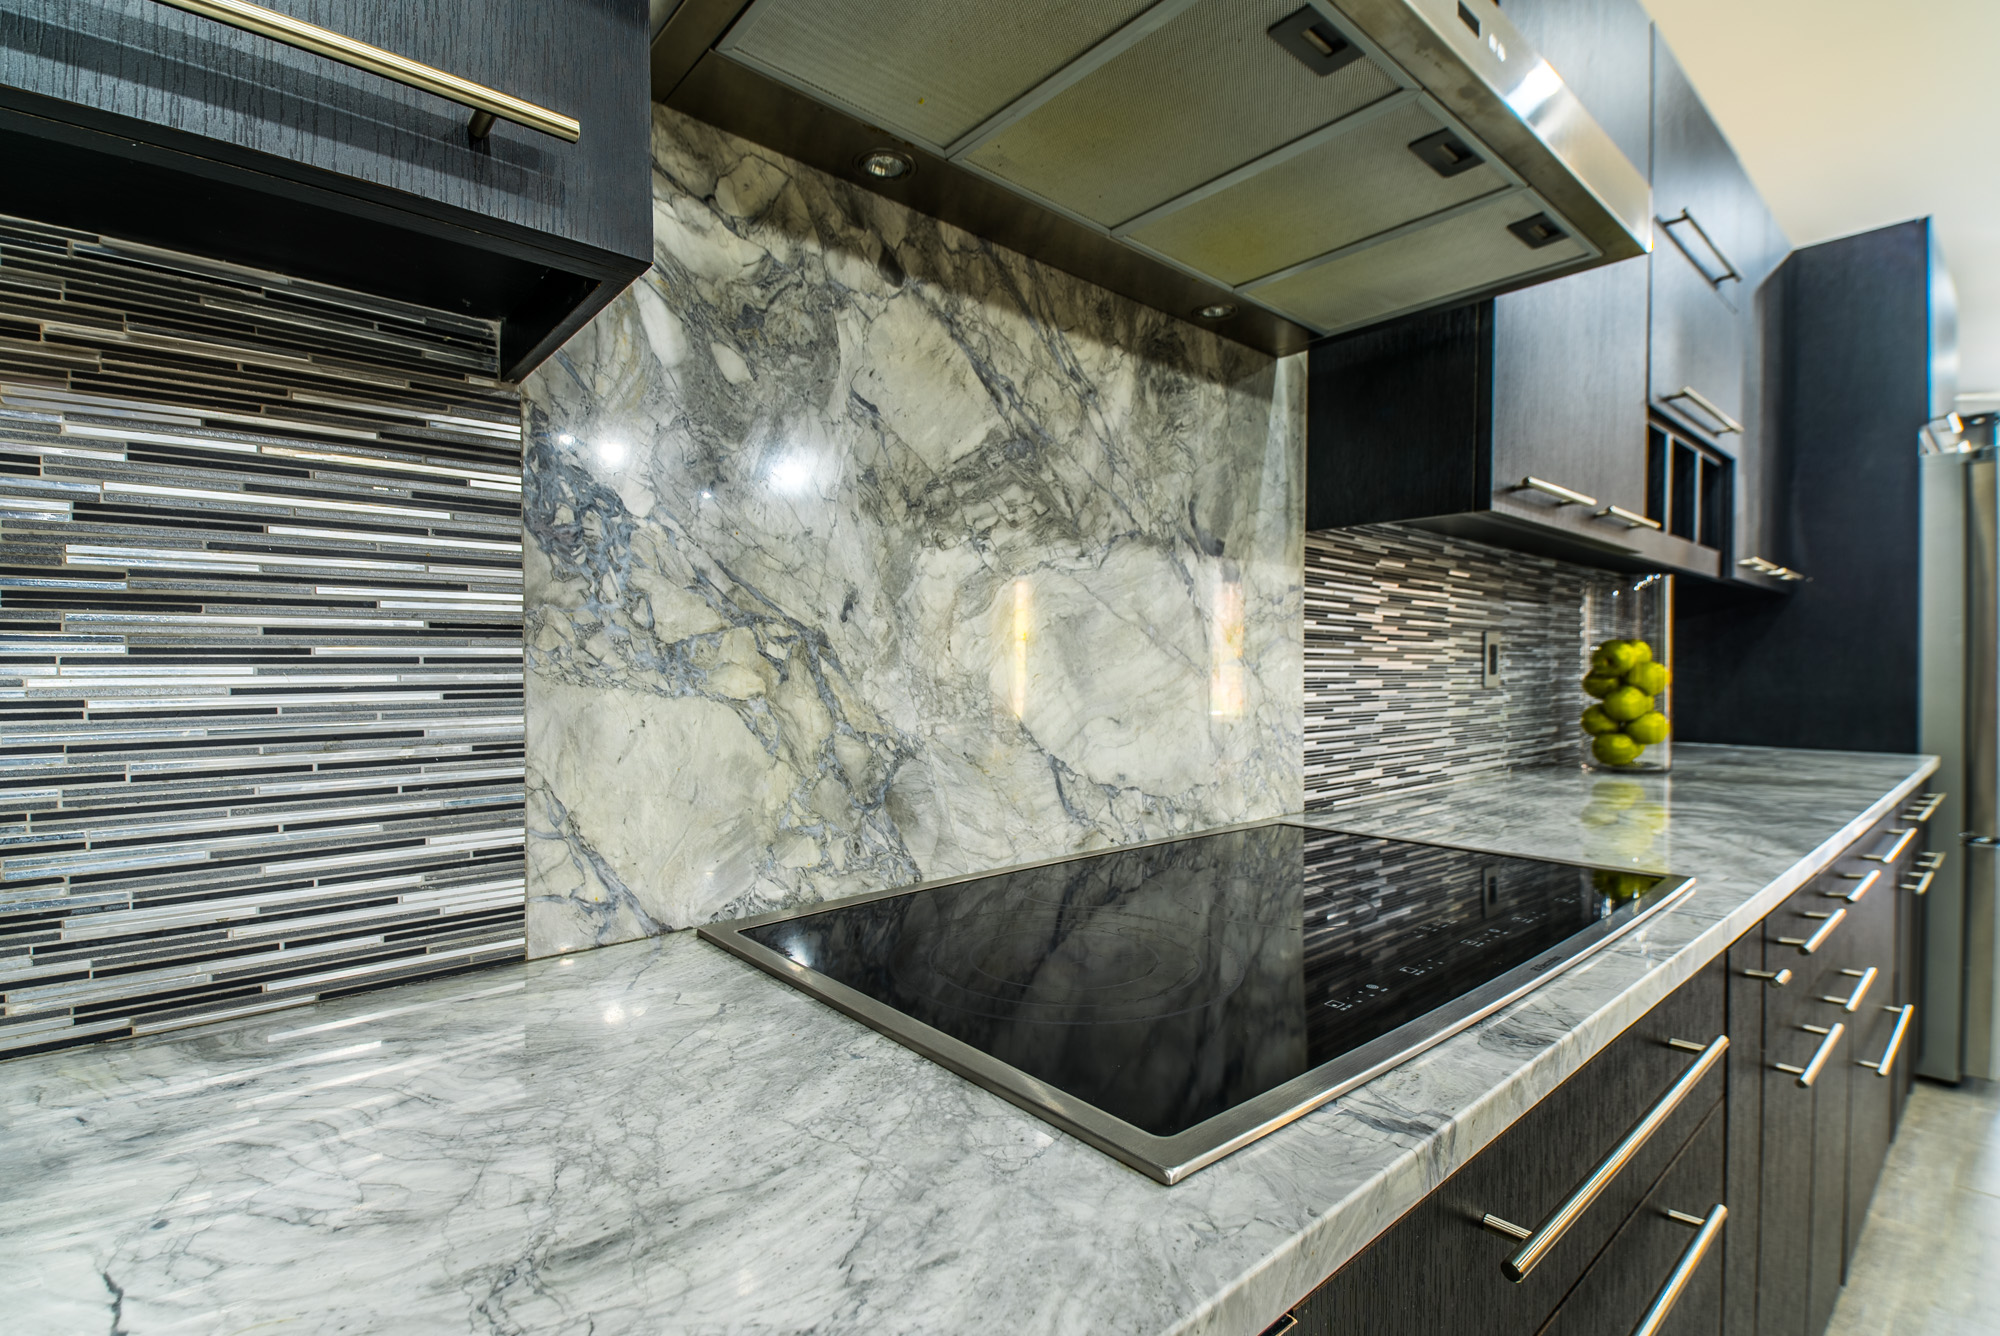 Marble countertops are a great way to tie colors in from all parts of the room